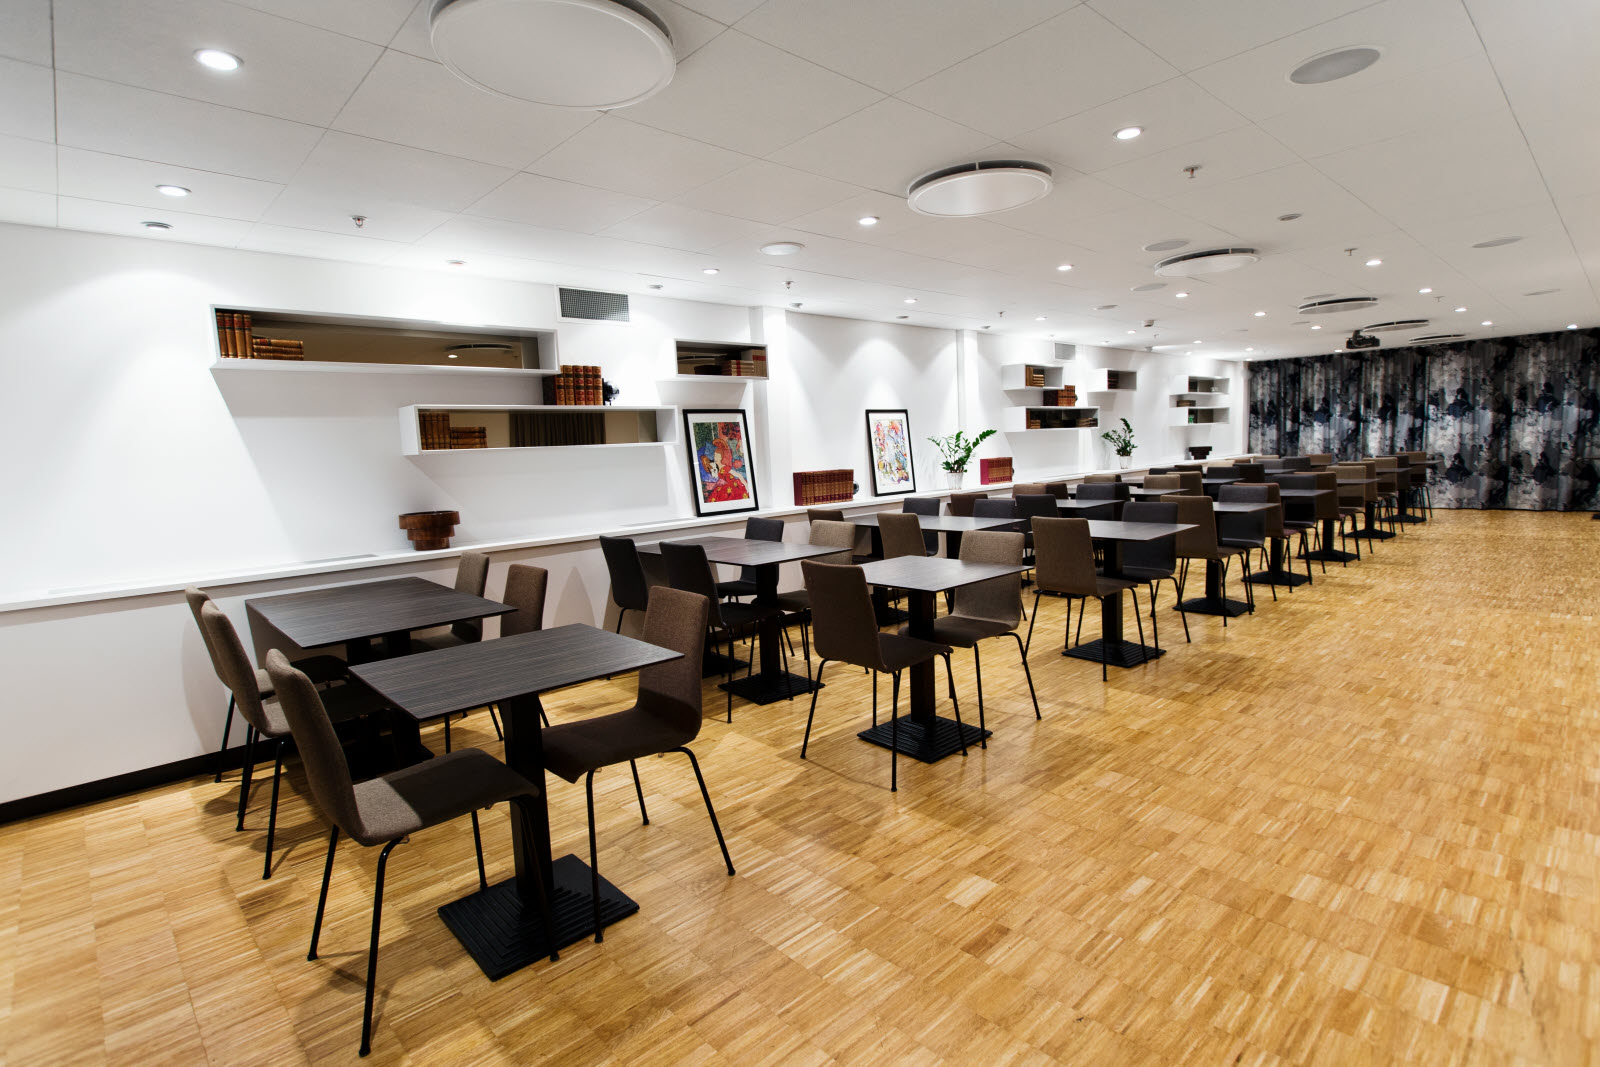 Scandic Karlstad City, restaurant, dining room